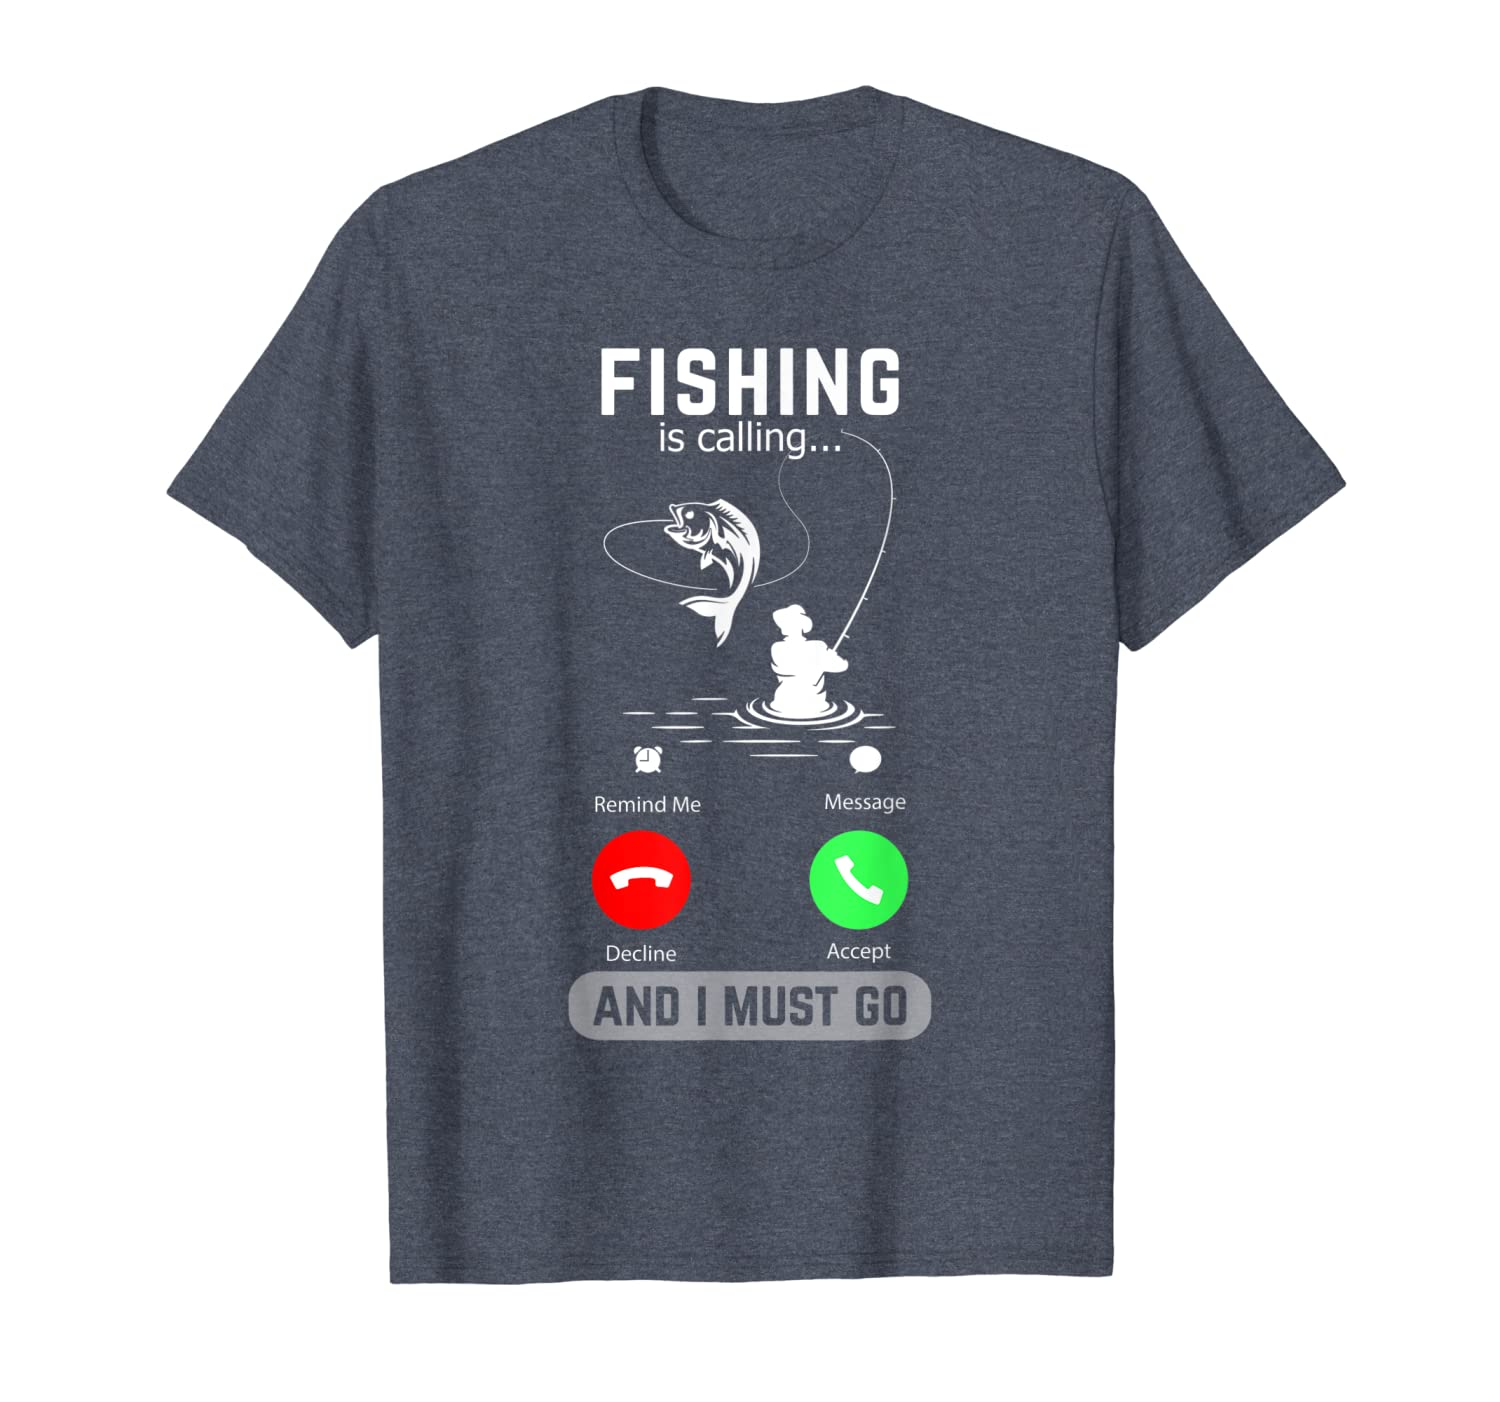 Fishing Is Calling And I Must Go Funny Phone Screen T-Shirt Unisex Tshirt